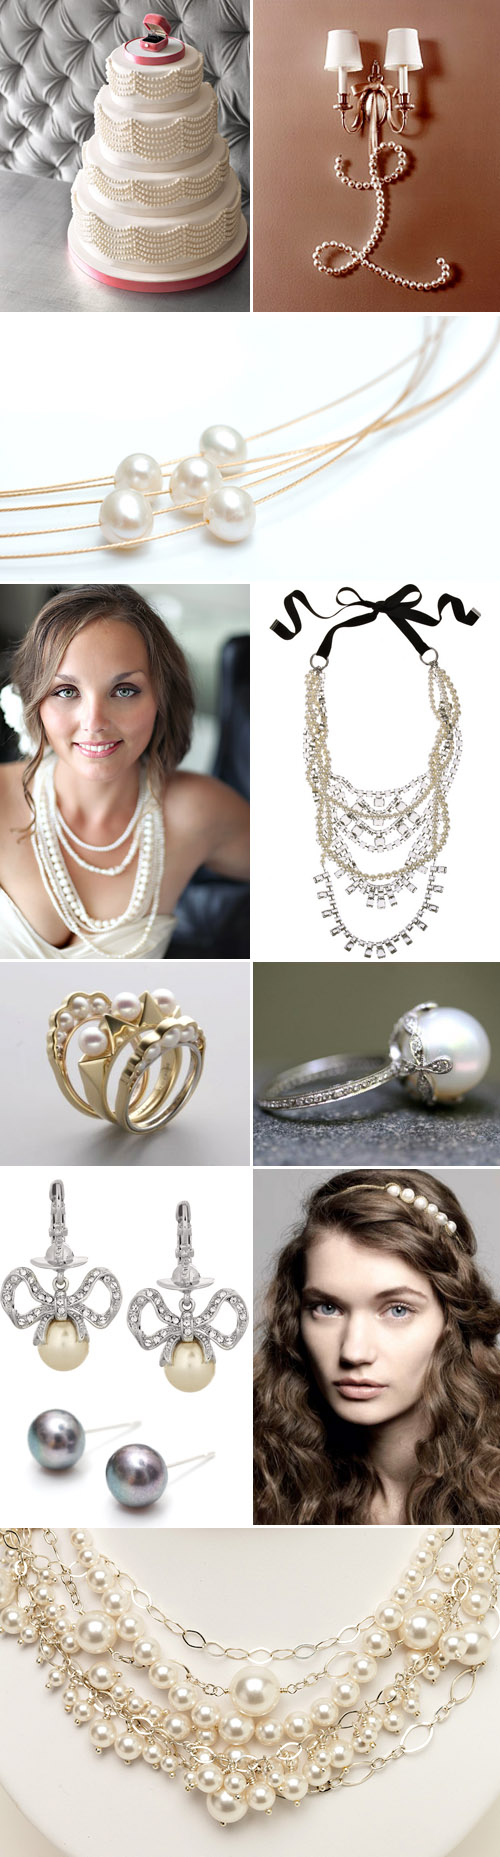 bridal pearl jewelry and accessory wedding inspiration